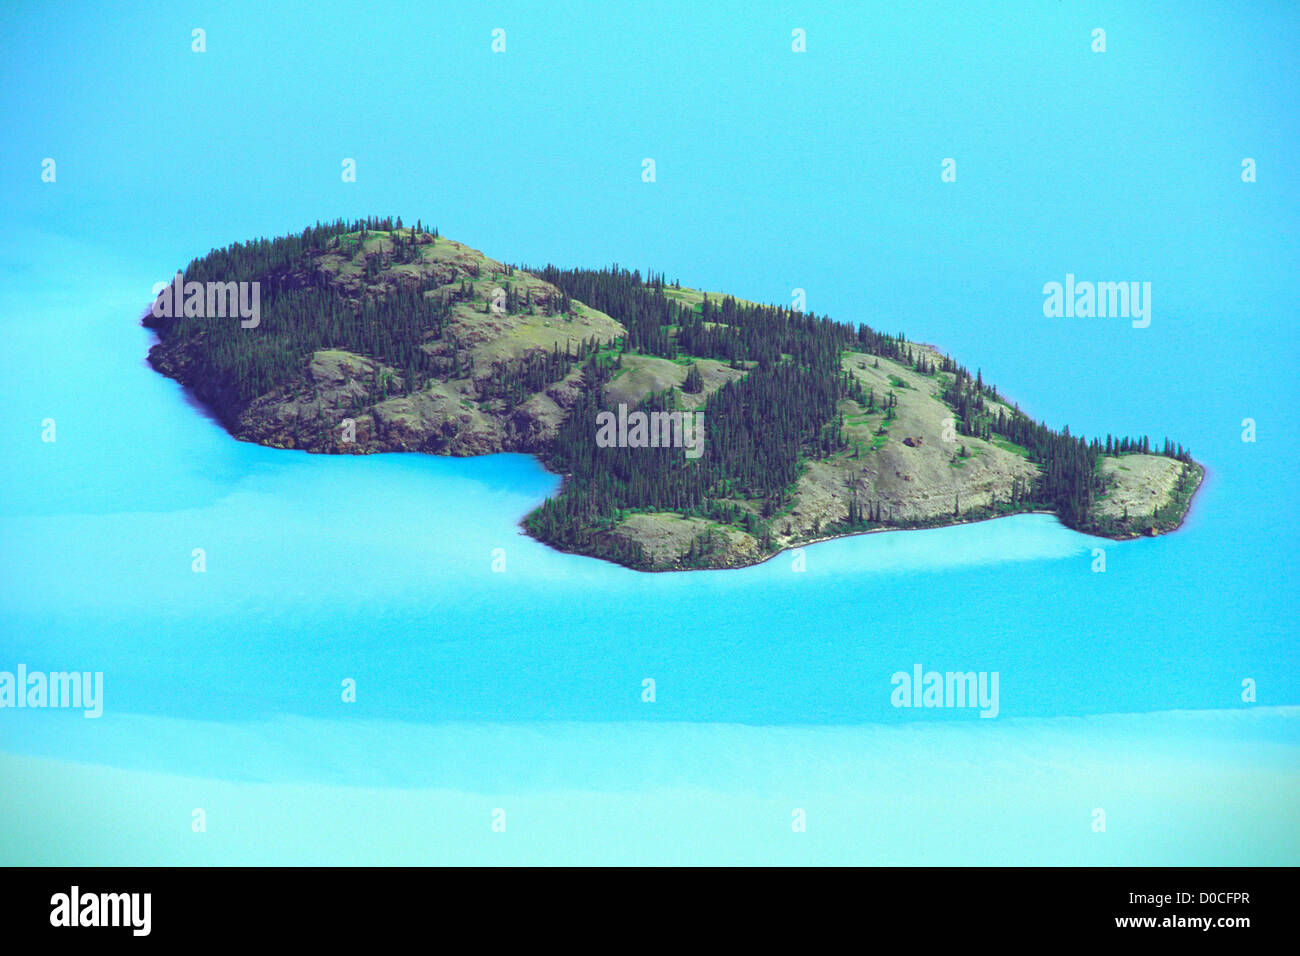 Rocky Island Amid Silt-Streaked Turquoise Waters - Stock Image